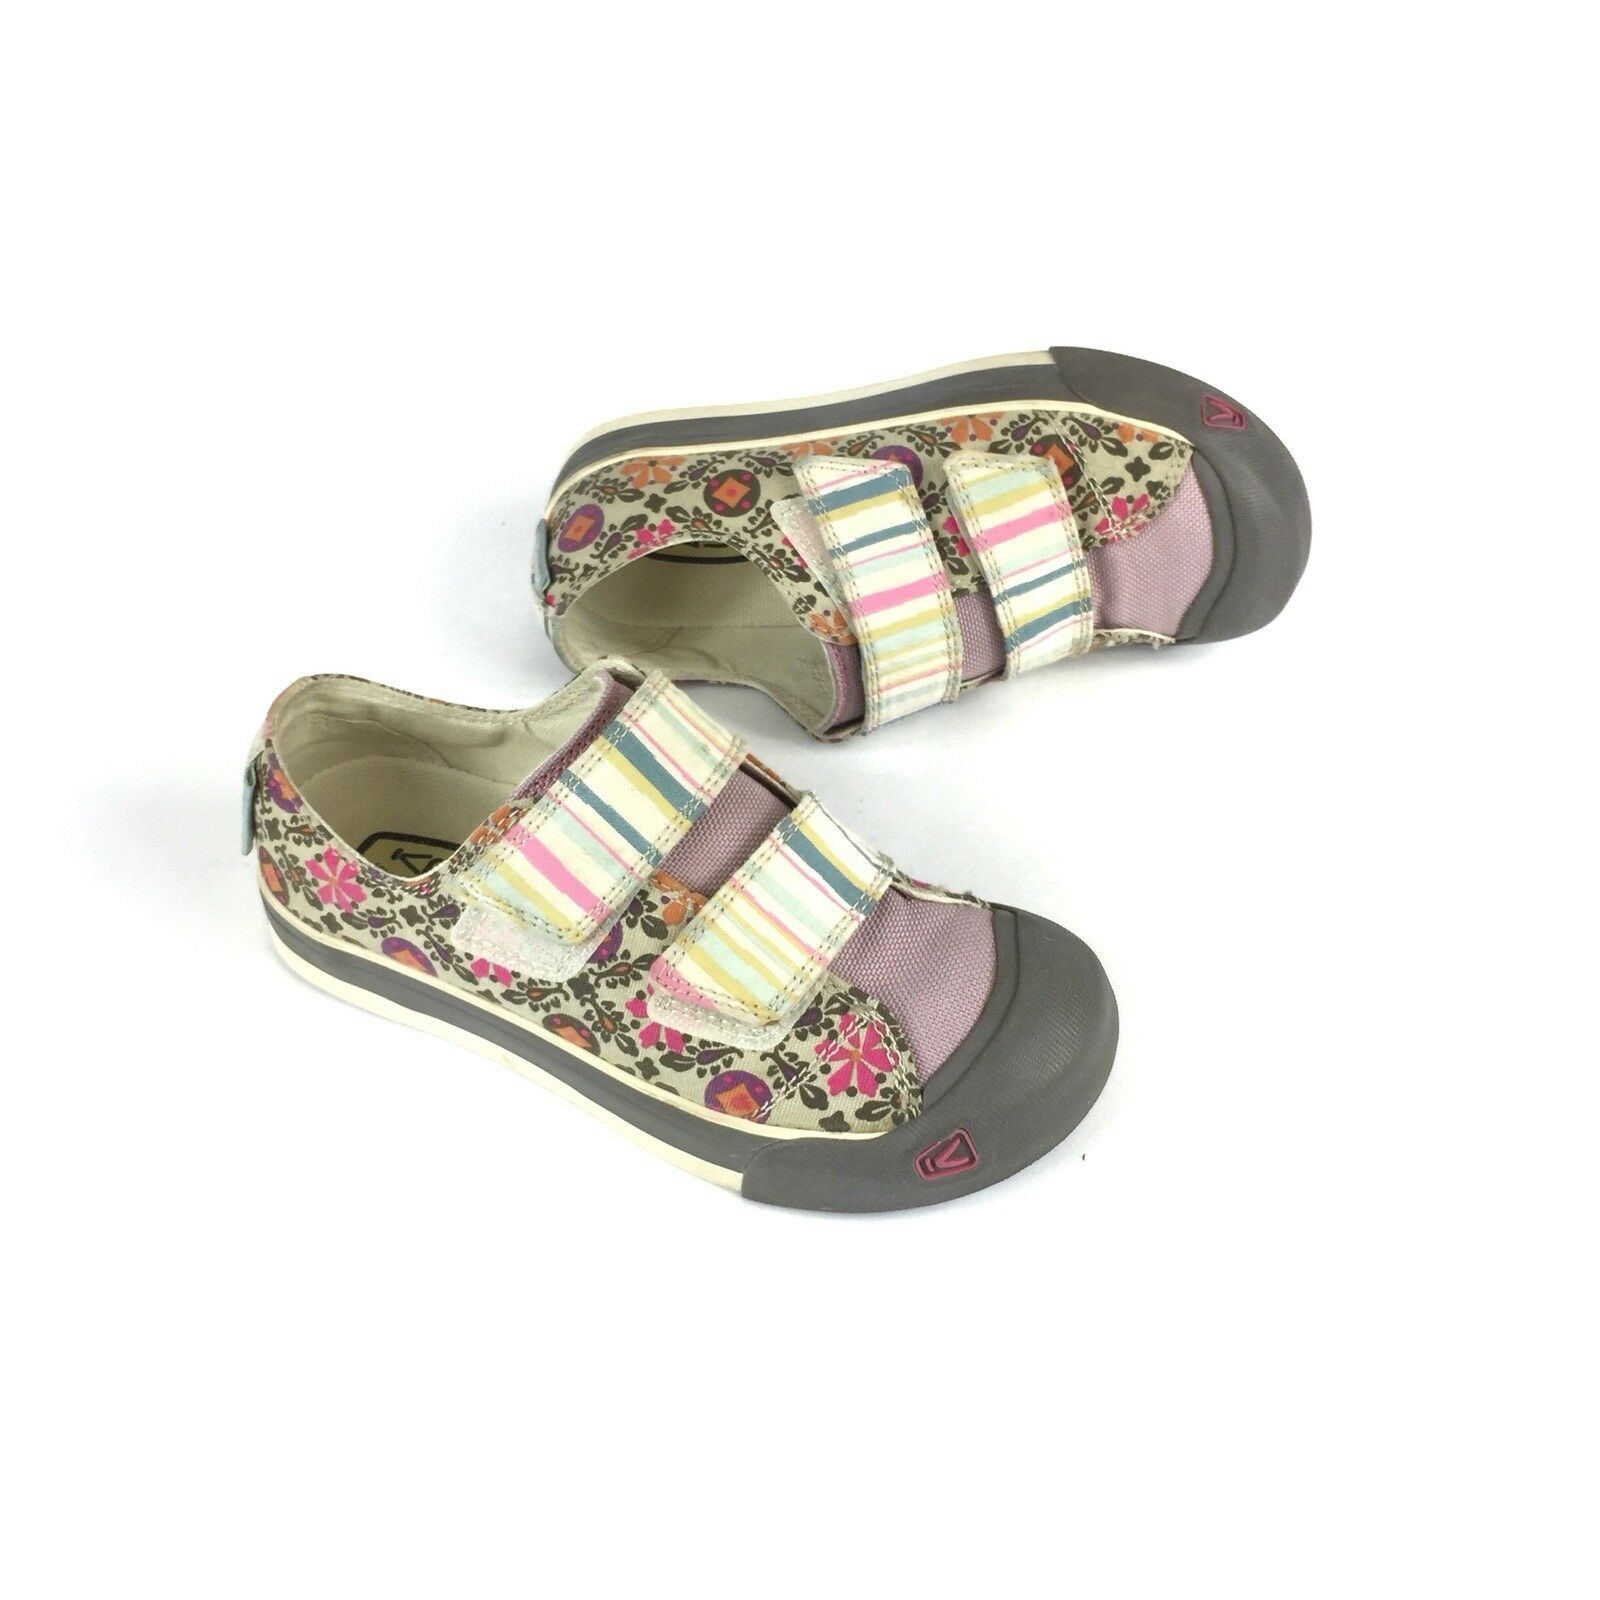 Keen Sula Sneakers shoes Size 5 Floral